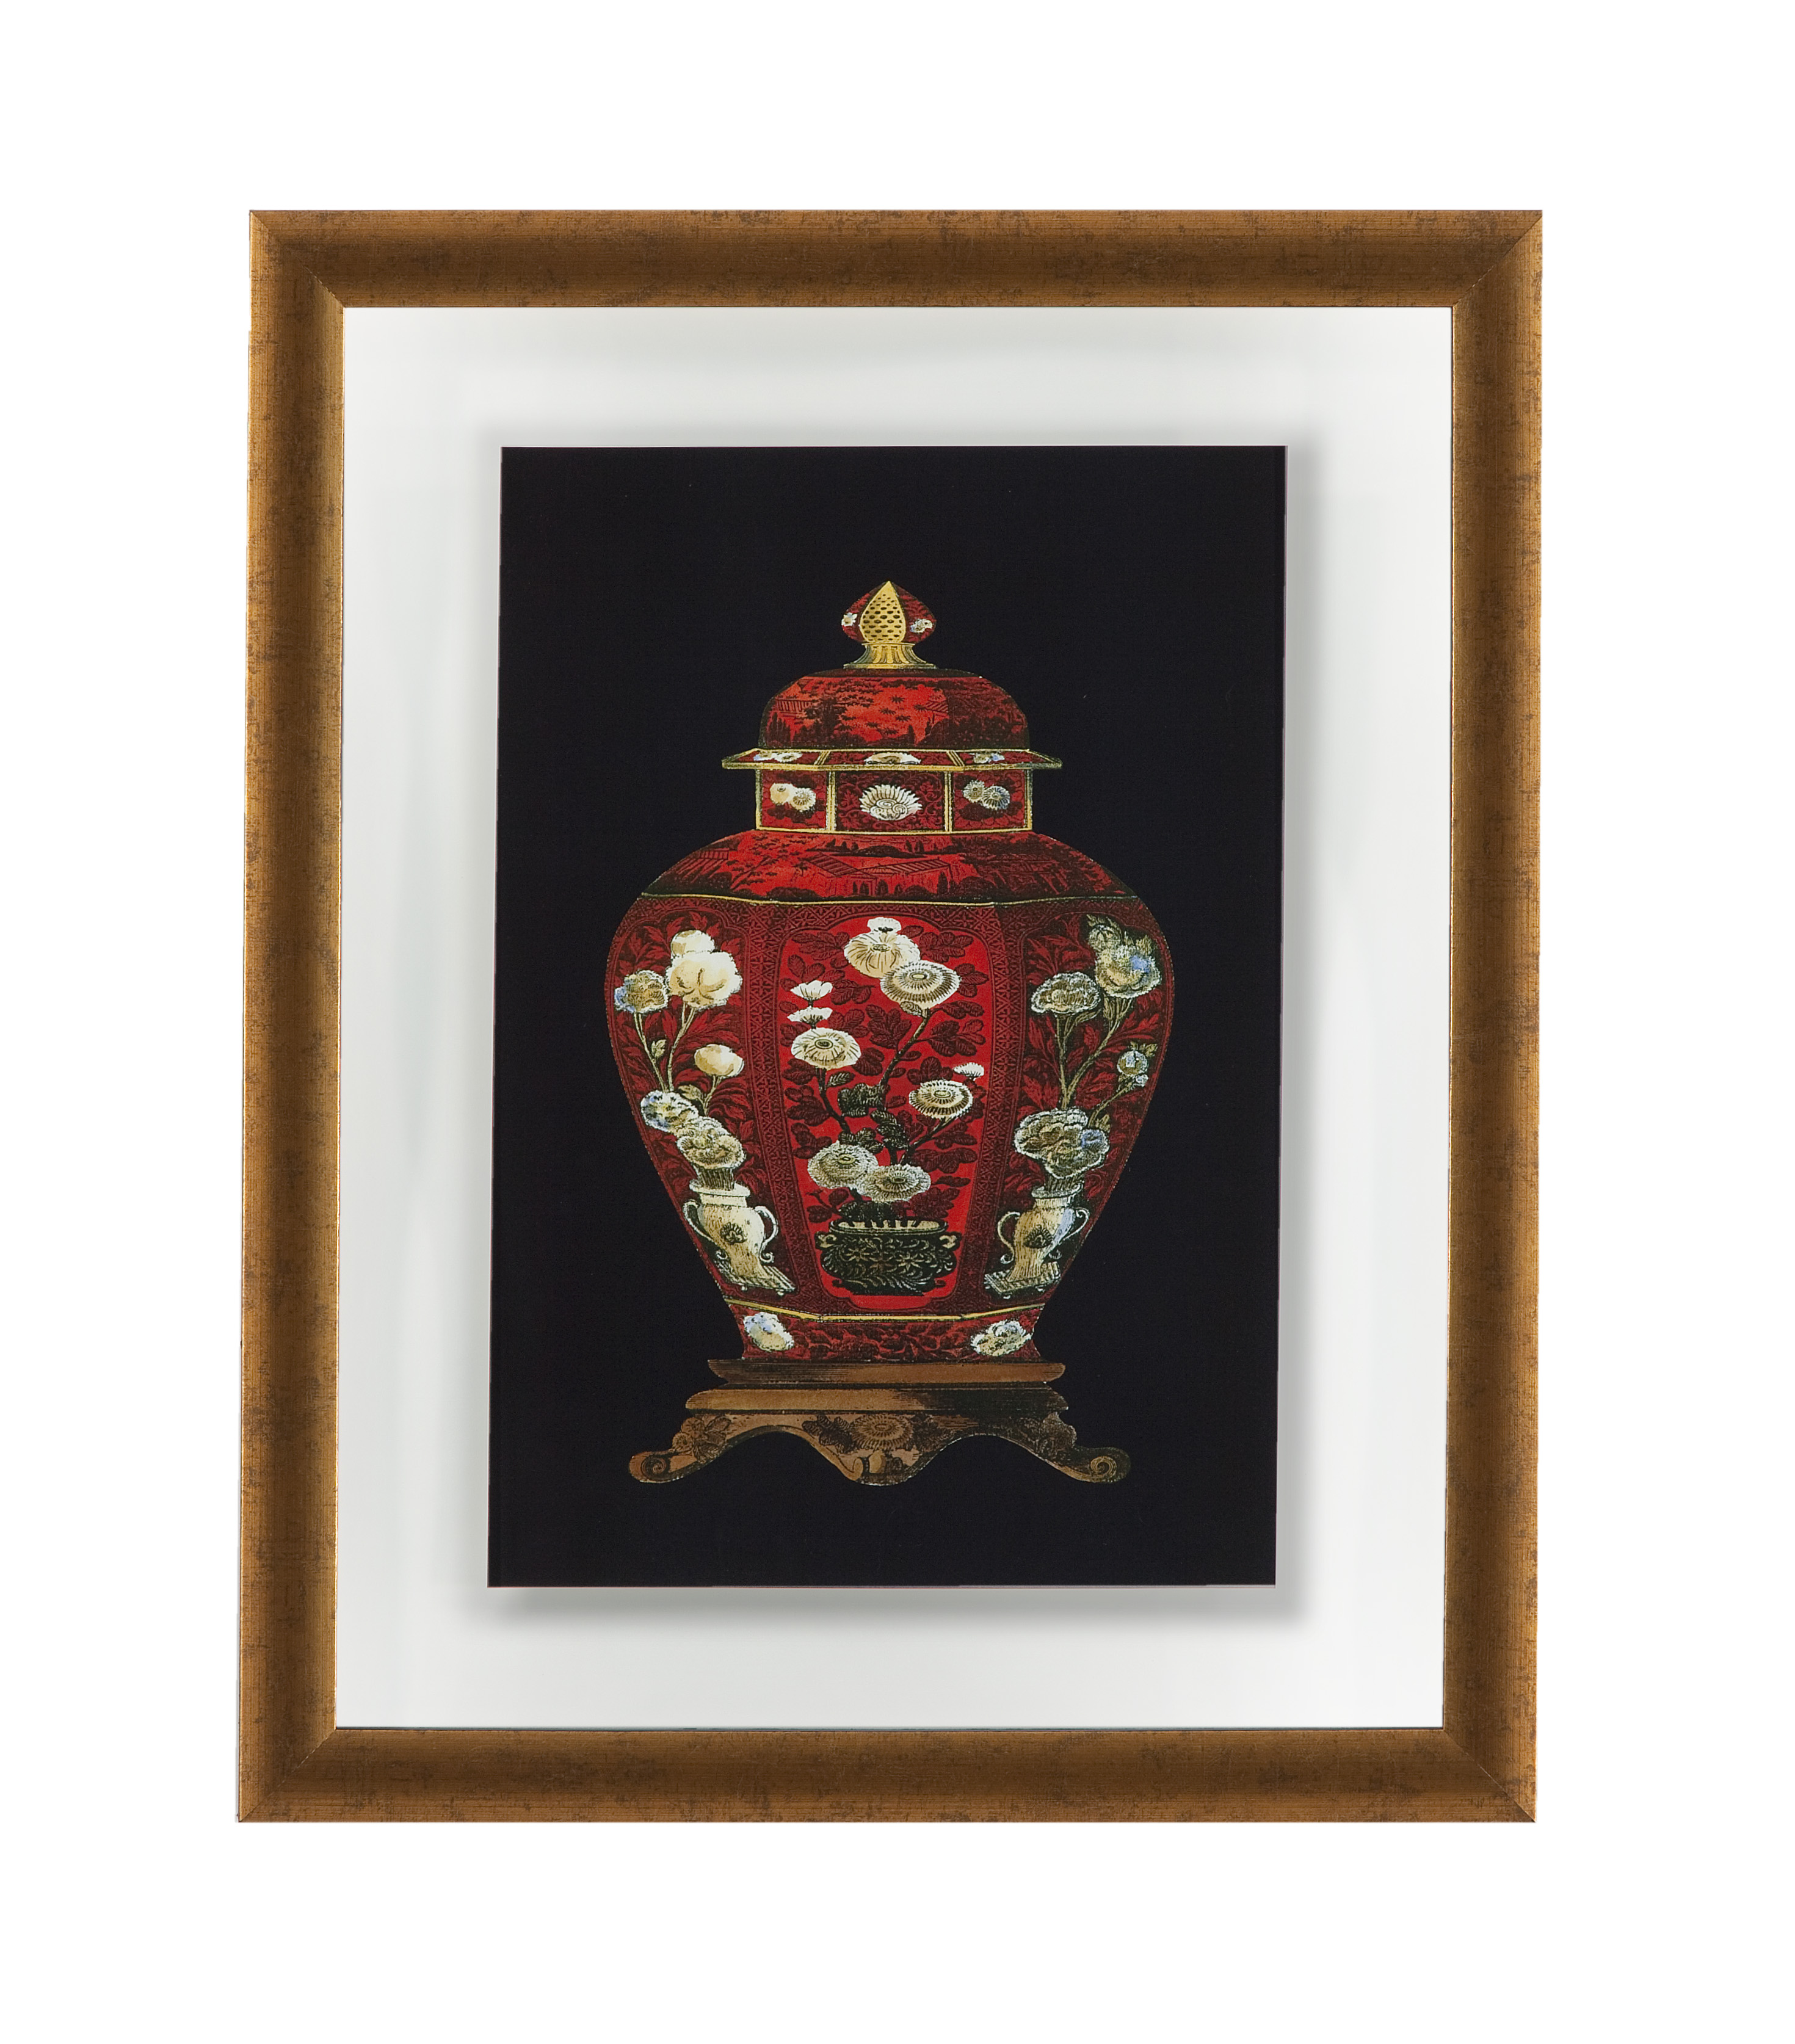 Old World Red Porcelain Vase I by Bassett Mirror at Dream Home Interiors